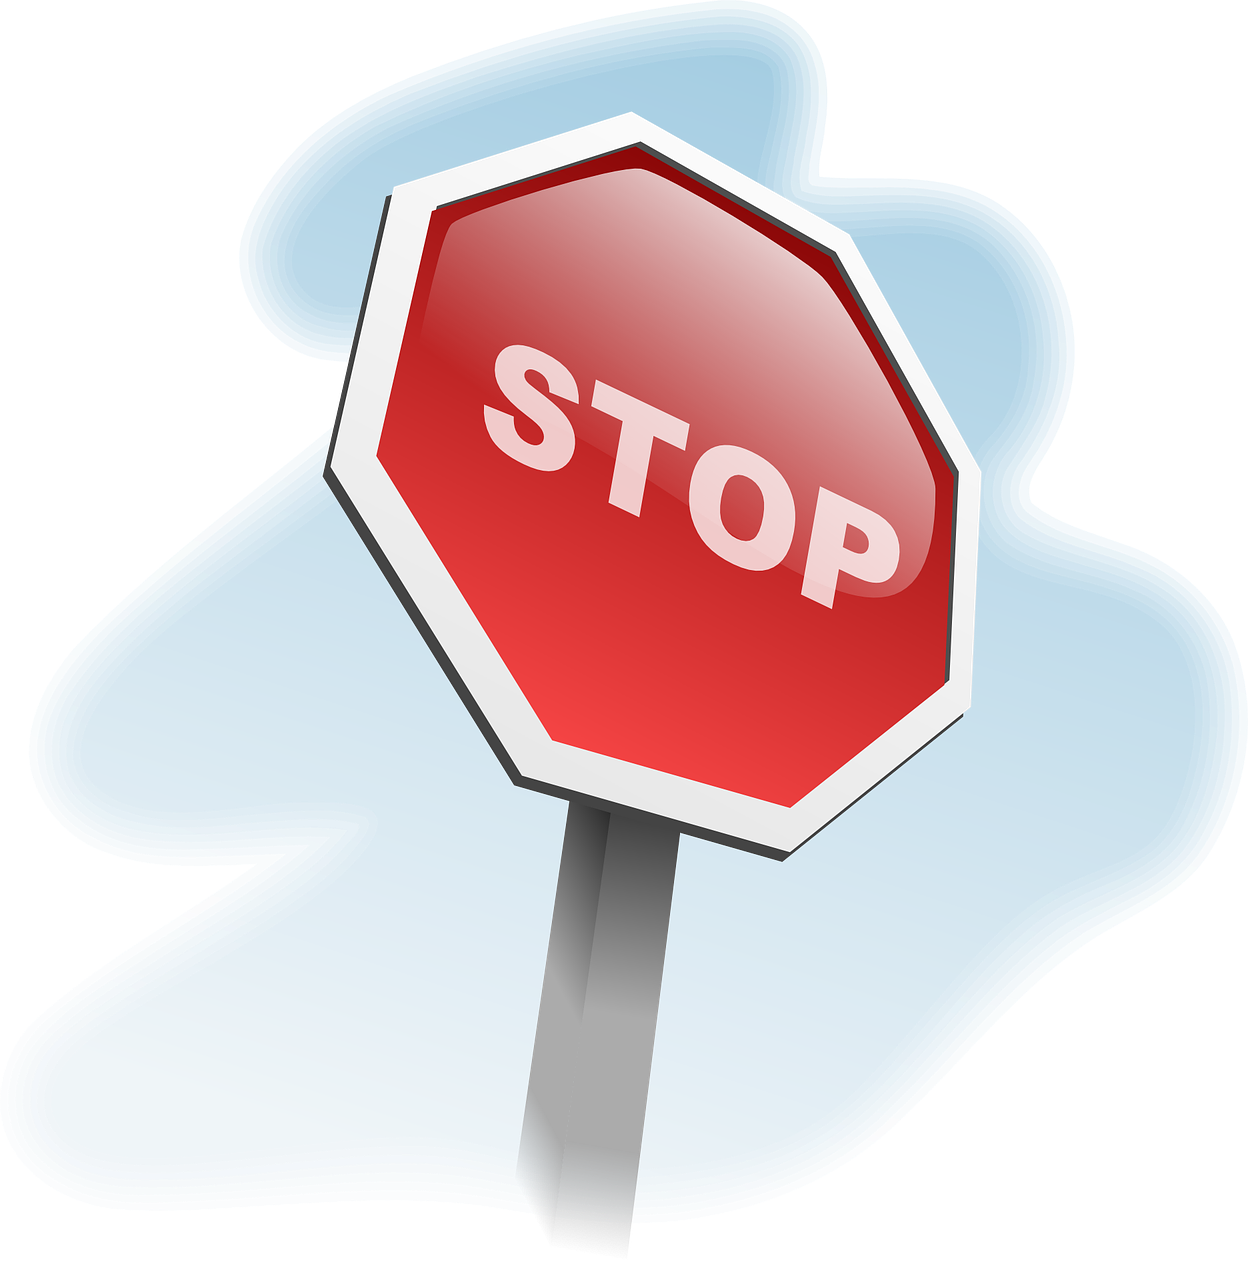 stop-sign-37020_1280.png